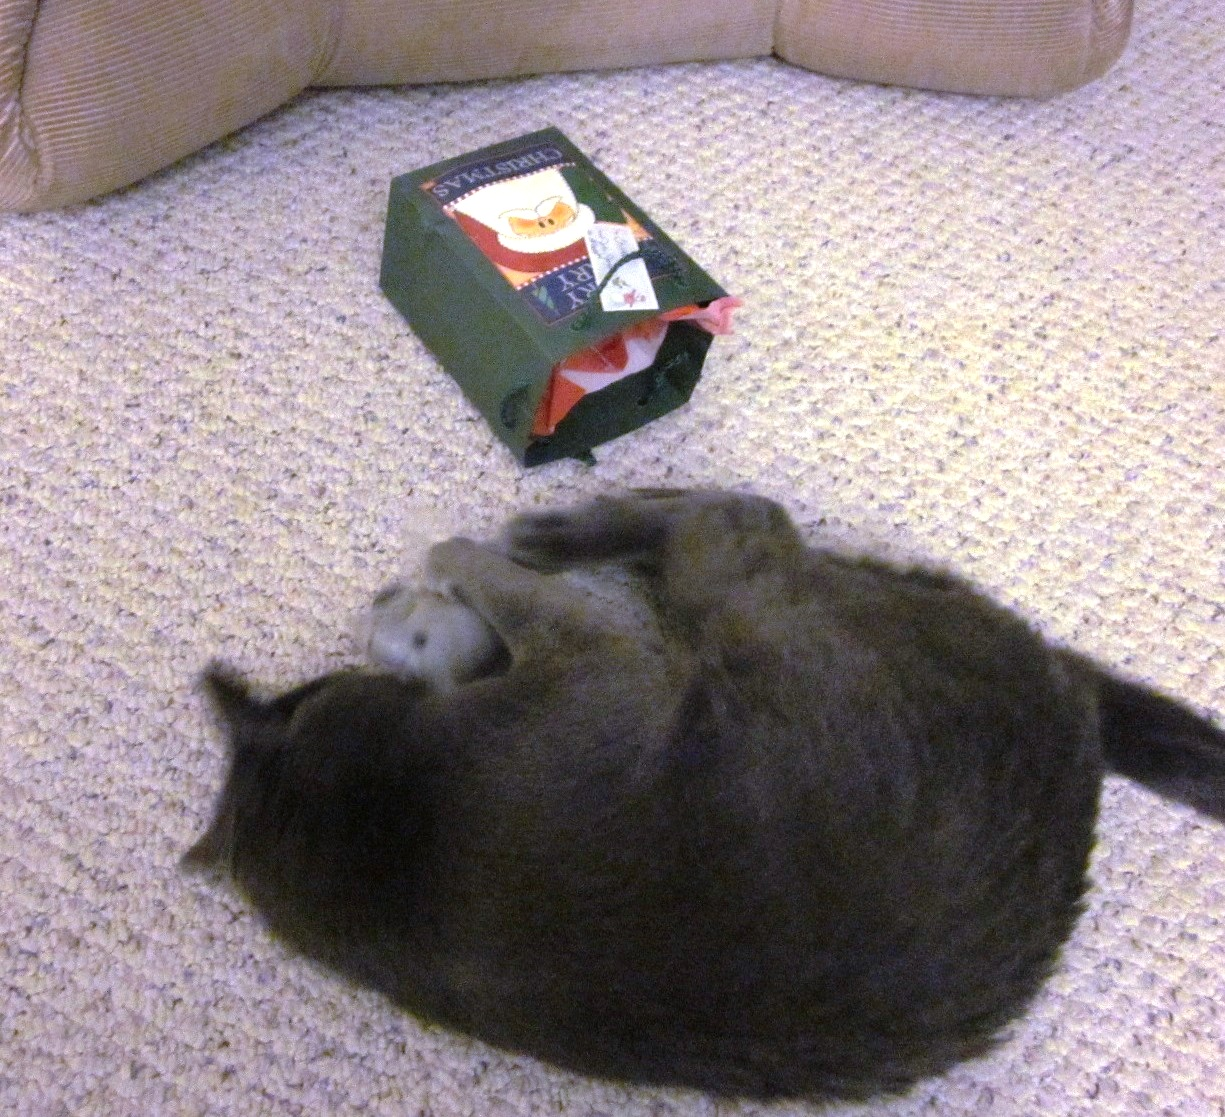 I unwrapped the mouse all by myself!